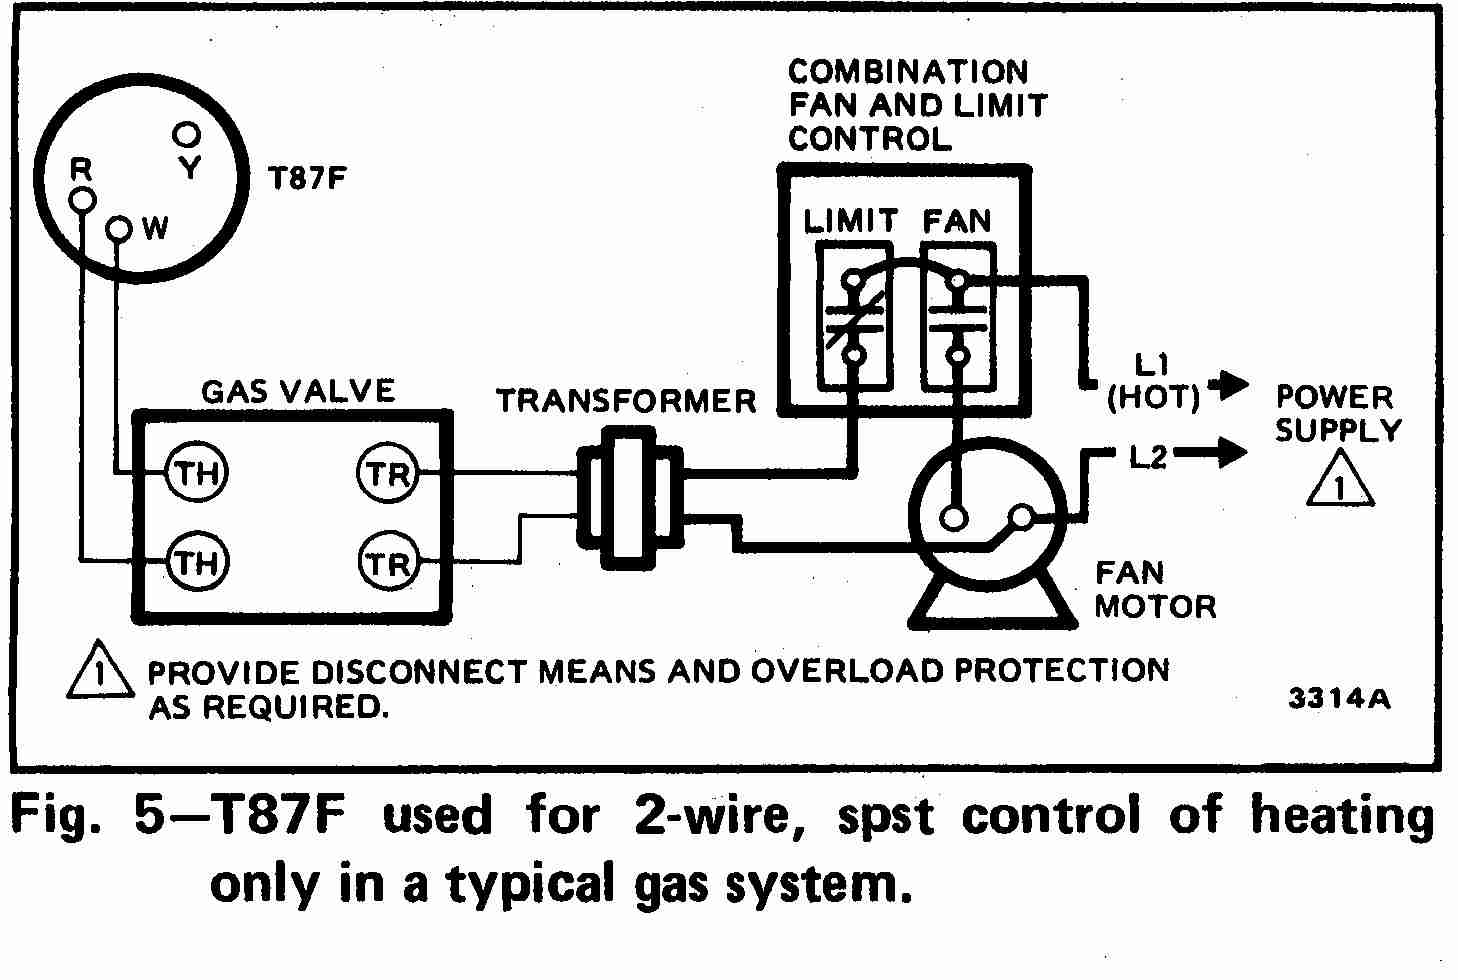 5943723 as well Ac Blower Motor Diagrams as well Emerson Rescue Motor Wiring Diagram additionally Nordyne Electric Furnace Blower Motor Wiring Diagram besides Thermostat Diagrams. on lennox furnace blower motors